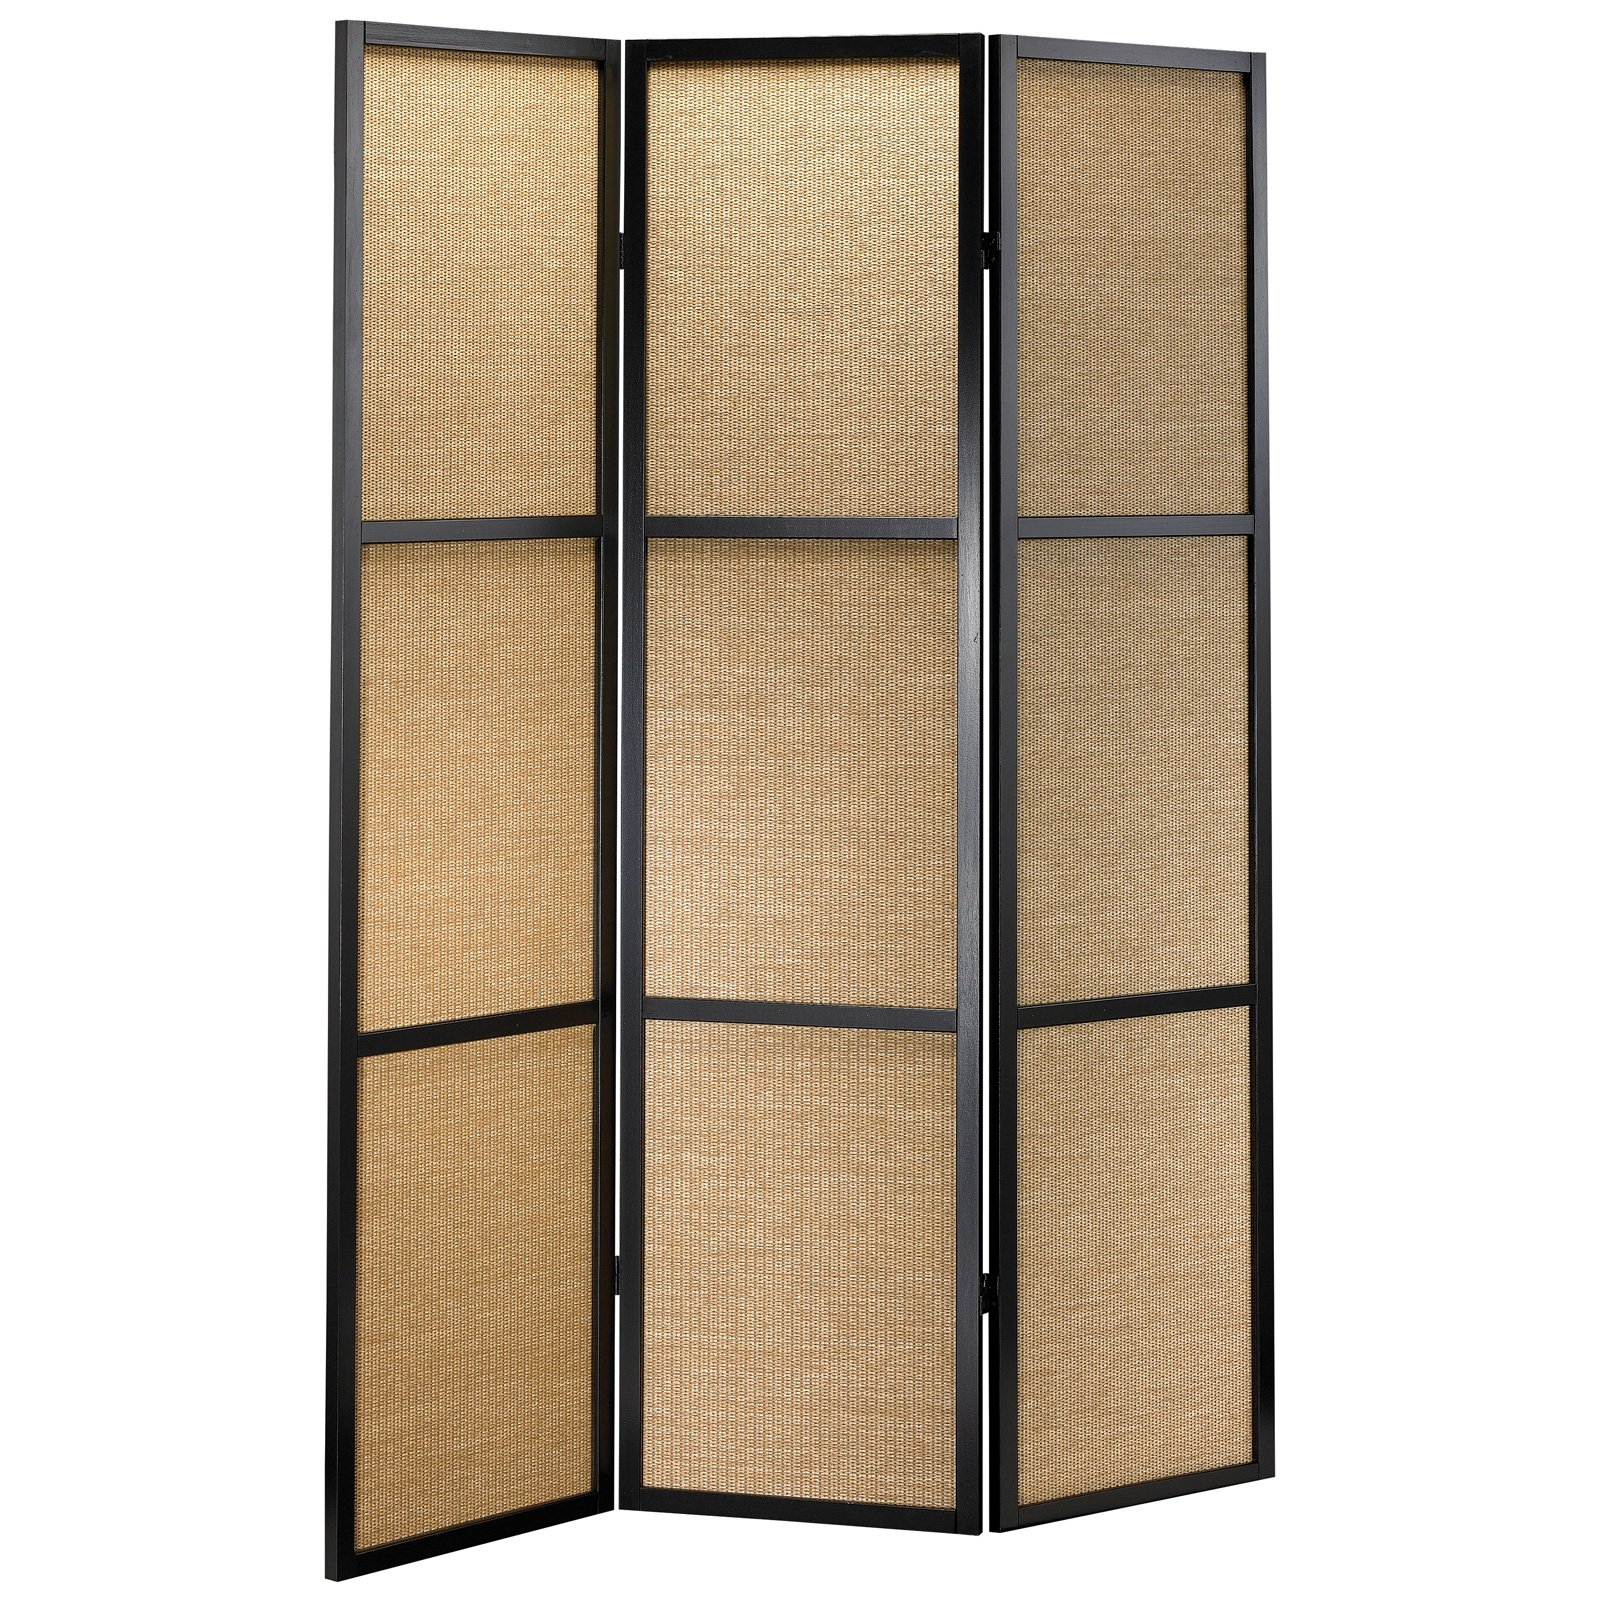 Adesso 3 Panel Woven Bamboo Room Divider with Black Frame - 52W x 70H in.